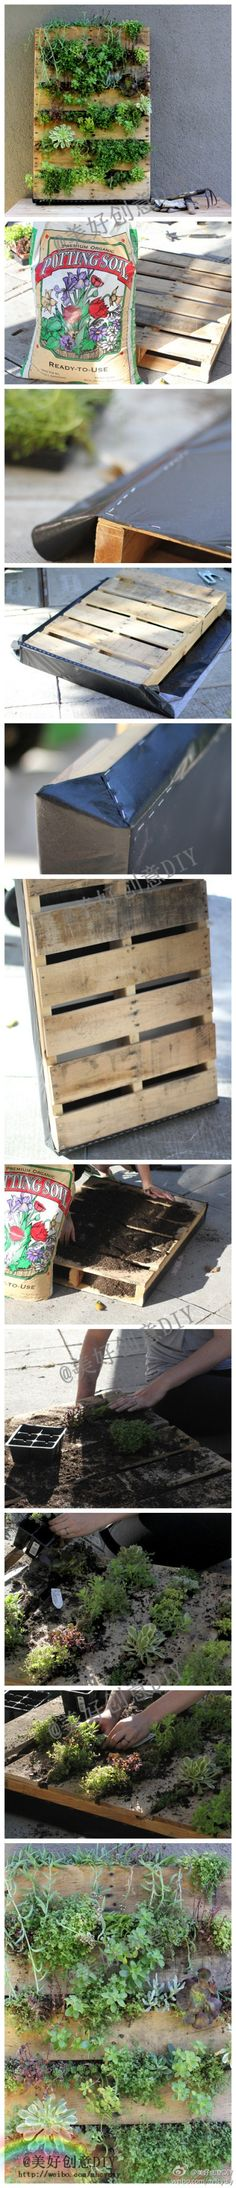 DIY Tutorial - easy vertical gardening with recycled pallets